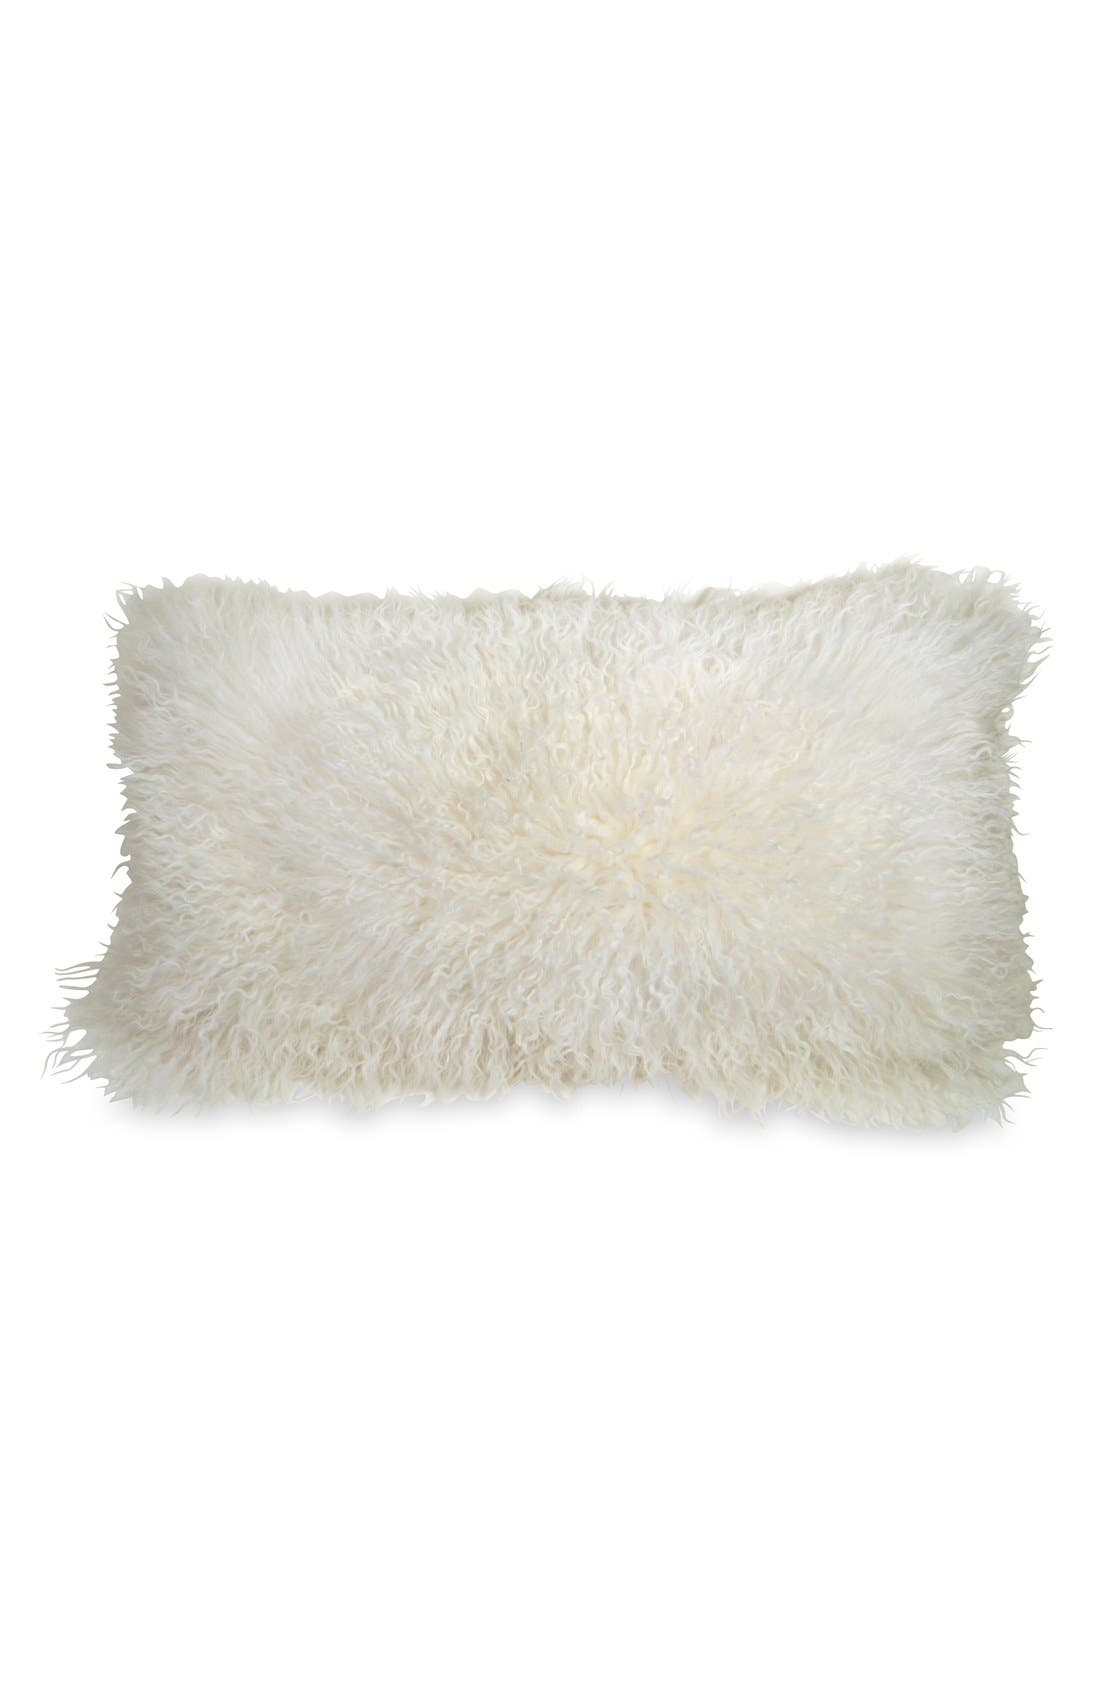 Donna Karan Collection Moonscape Flokati Genuine Sheepskin Pillow,                             Main thumbnail 1, color,                             Ivory